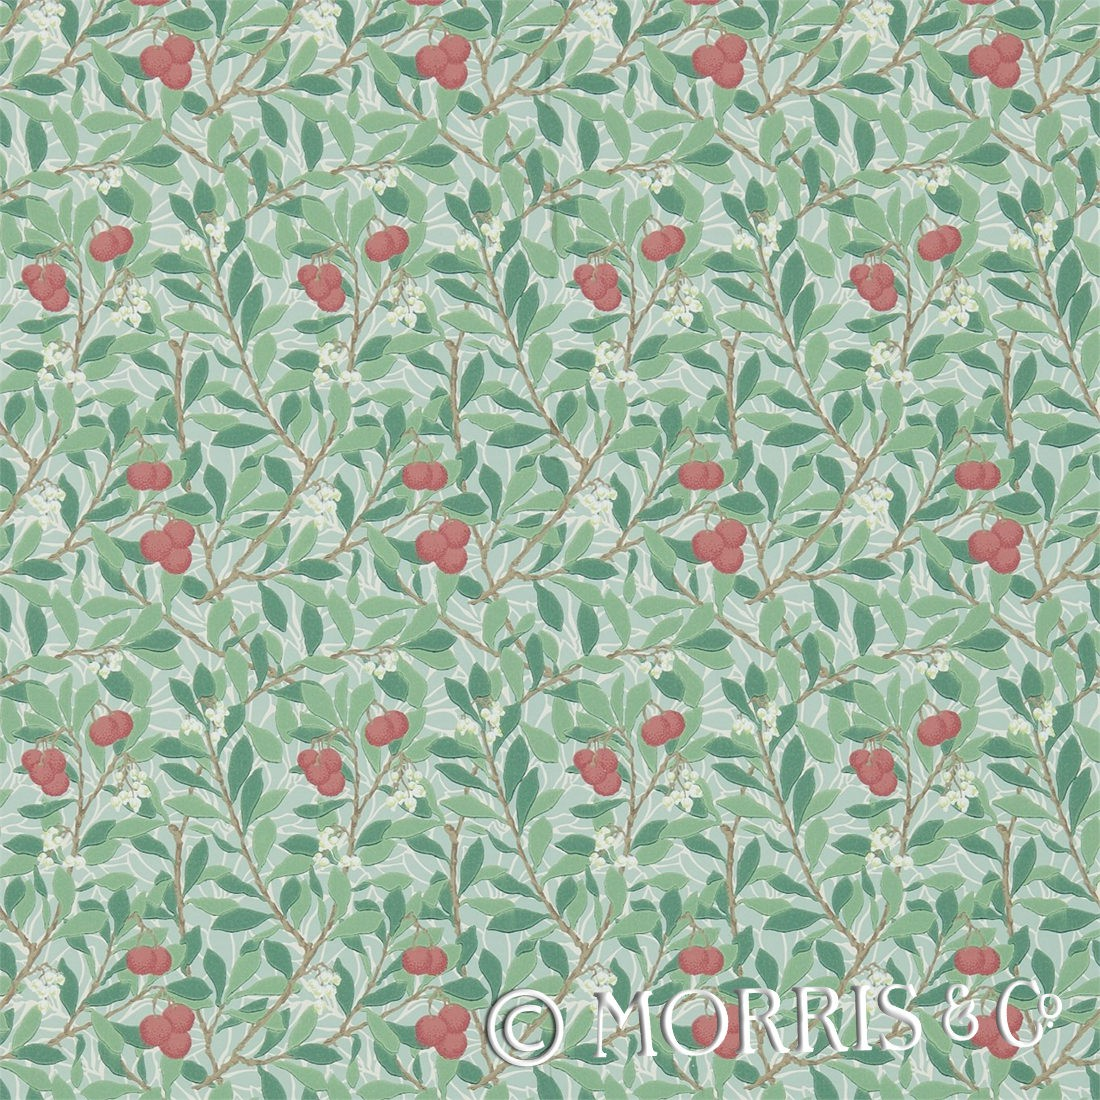 Morris & Co Tapet Thyme Coral